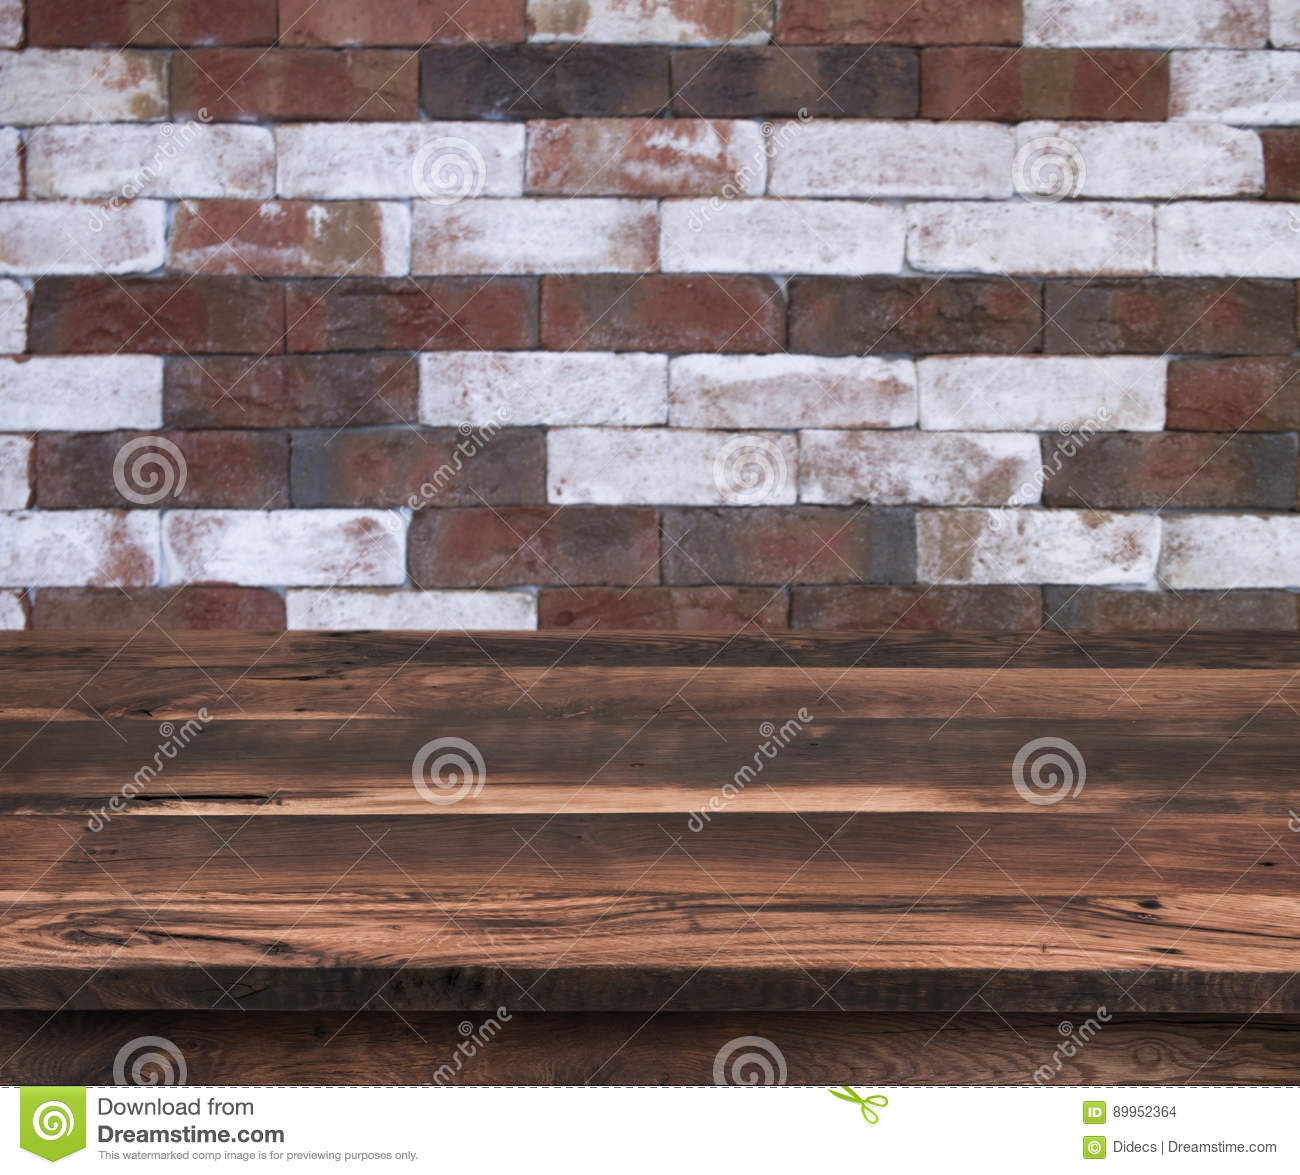 Empty wooden shelf with vintage brick wall pattern as background